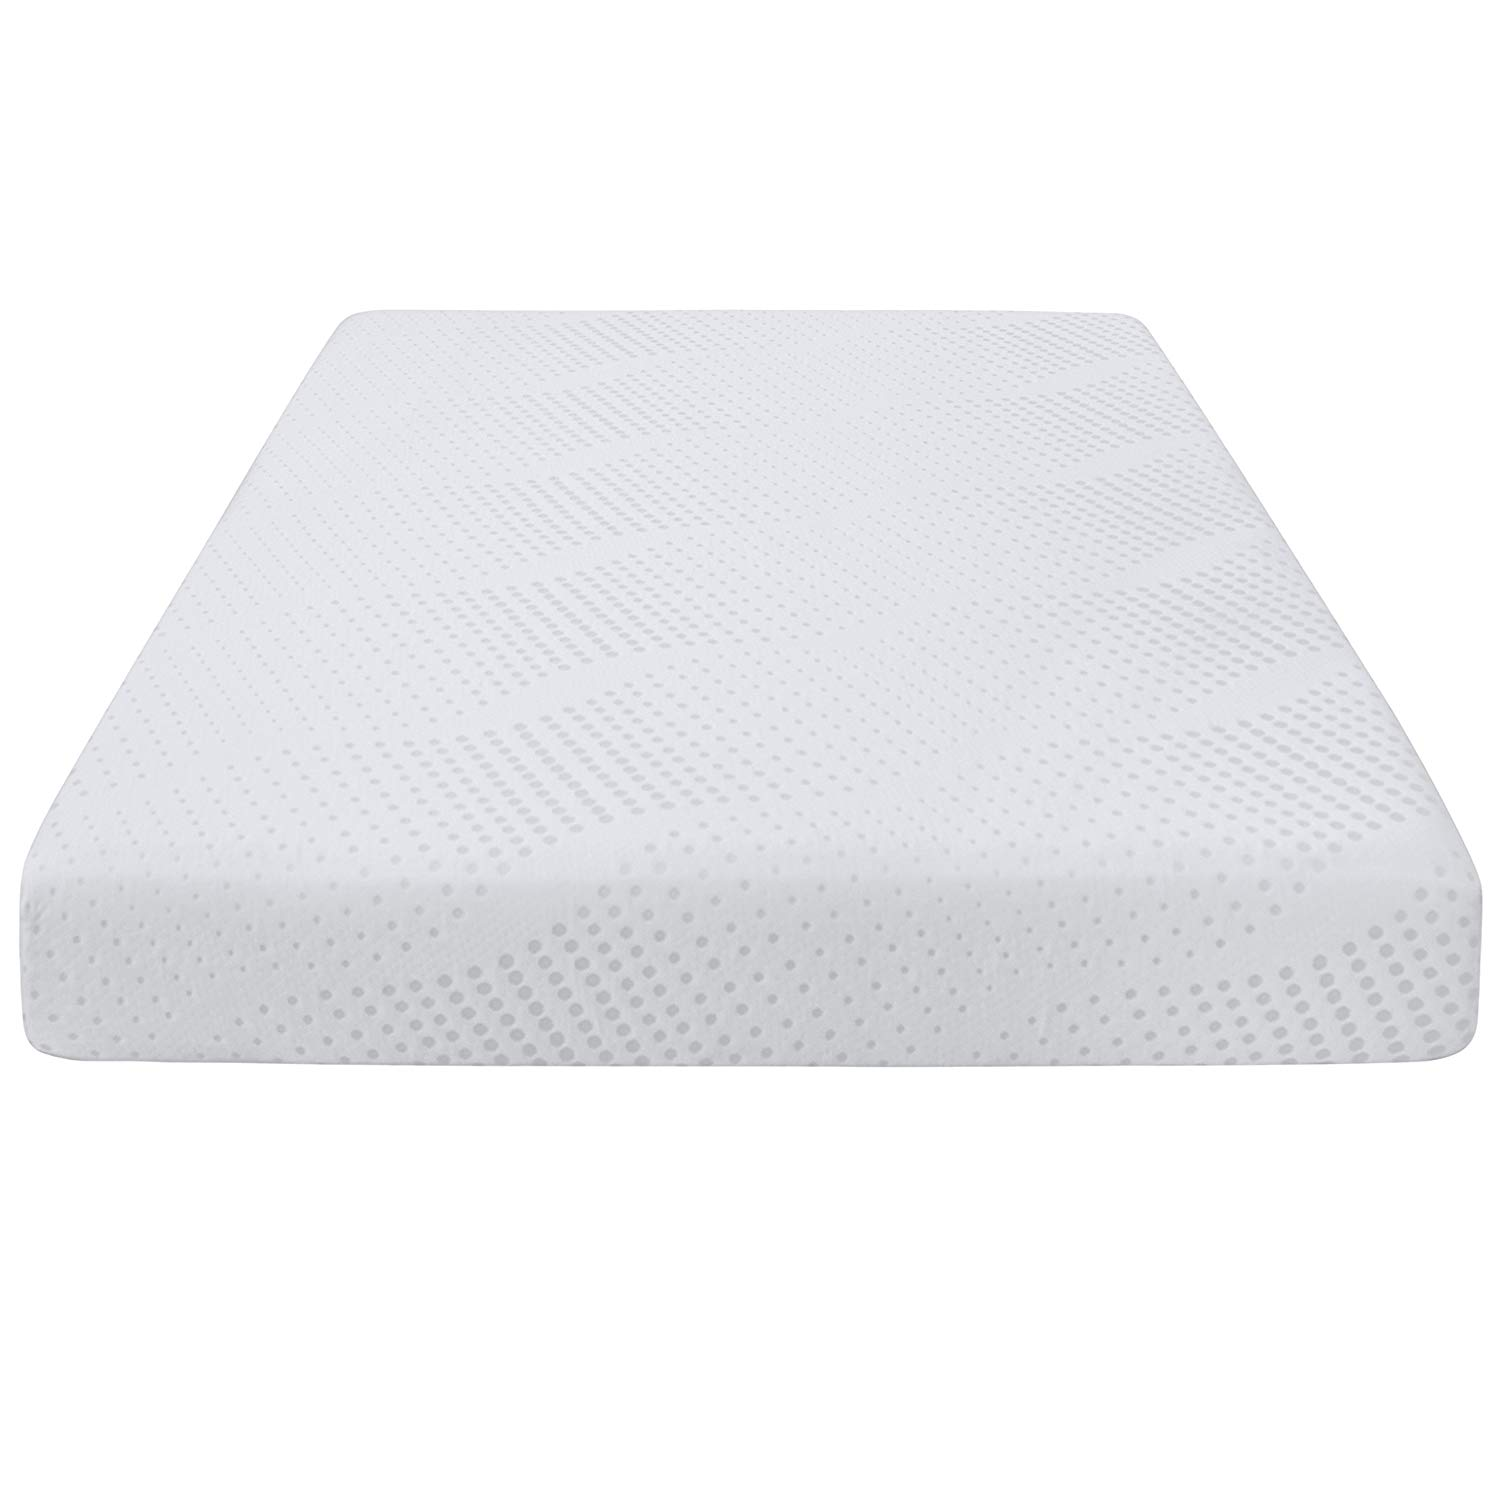 """Queen Size Dual Layered 2.5"""" Gel-Infused Memory Foam Mattress Improves Posture Supports Body's Natural Pressure Points CertiPUR-US Certified All-Over Cooling Ventilation and Open Cell Technology"""